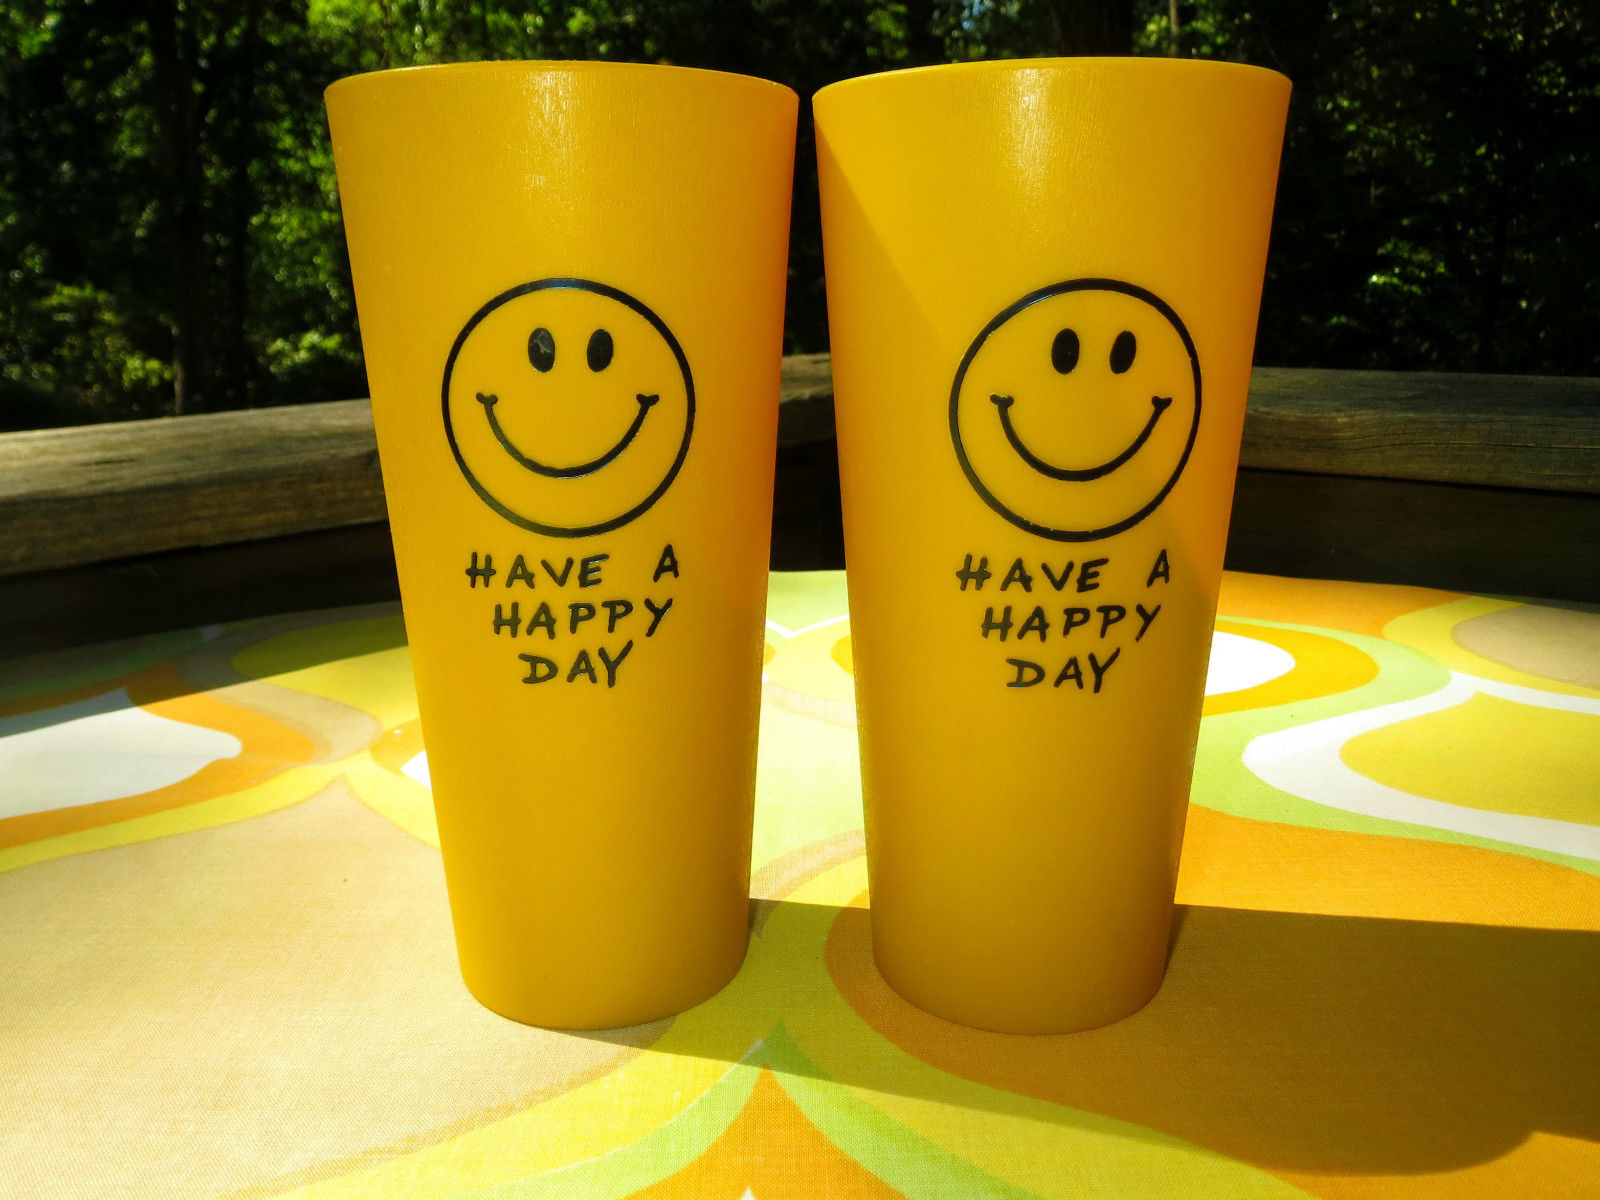 Vtg 1970s Retro Smiley Face Groovy Plastic Hippie Have A Happy Day Cups Tumblers   eBay